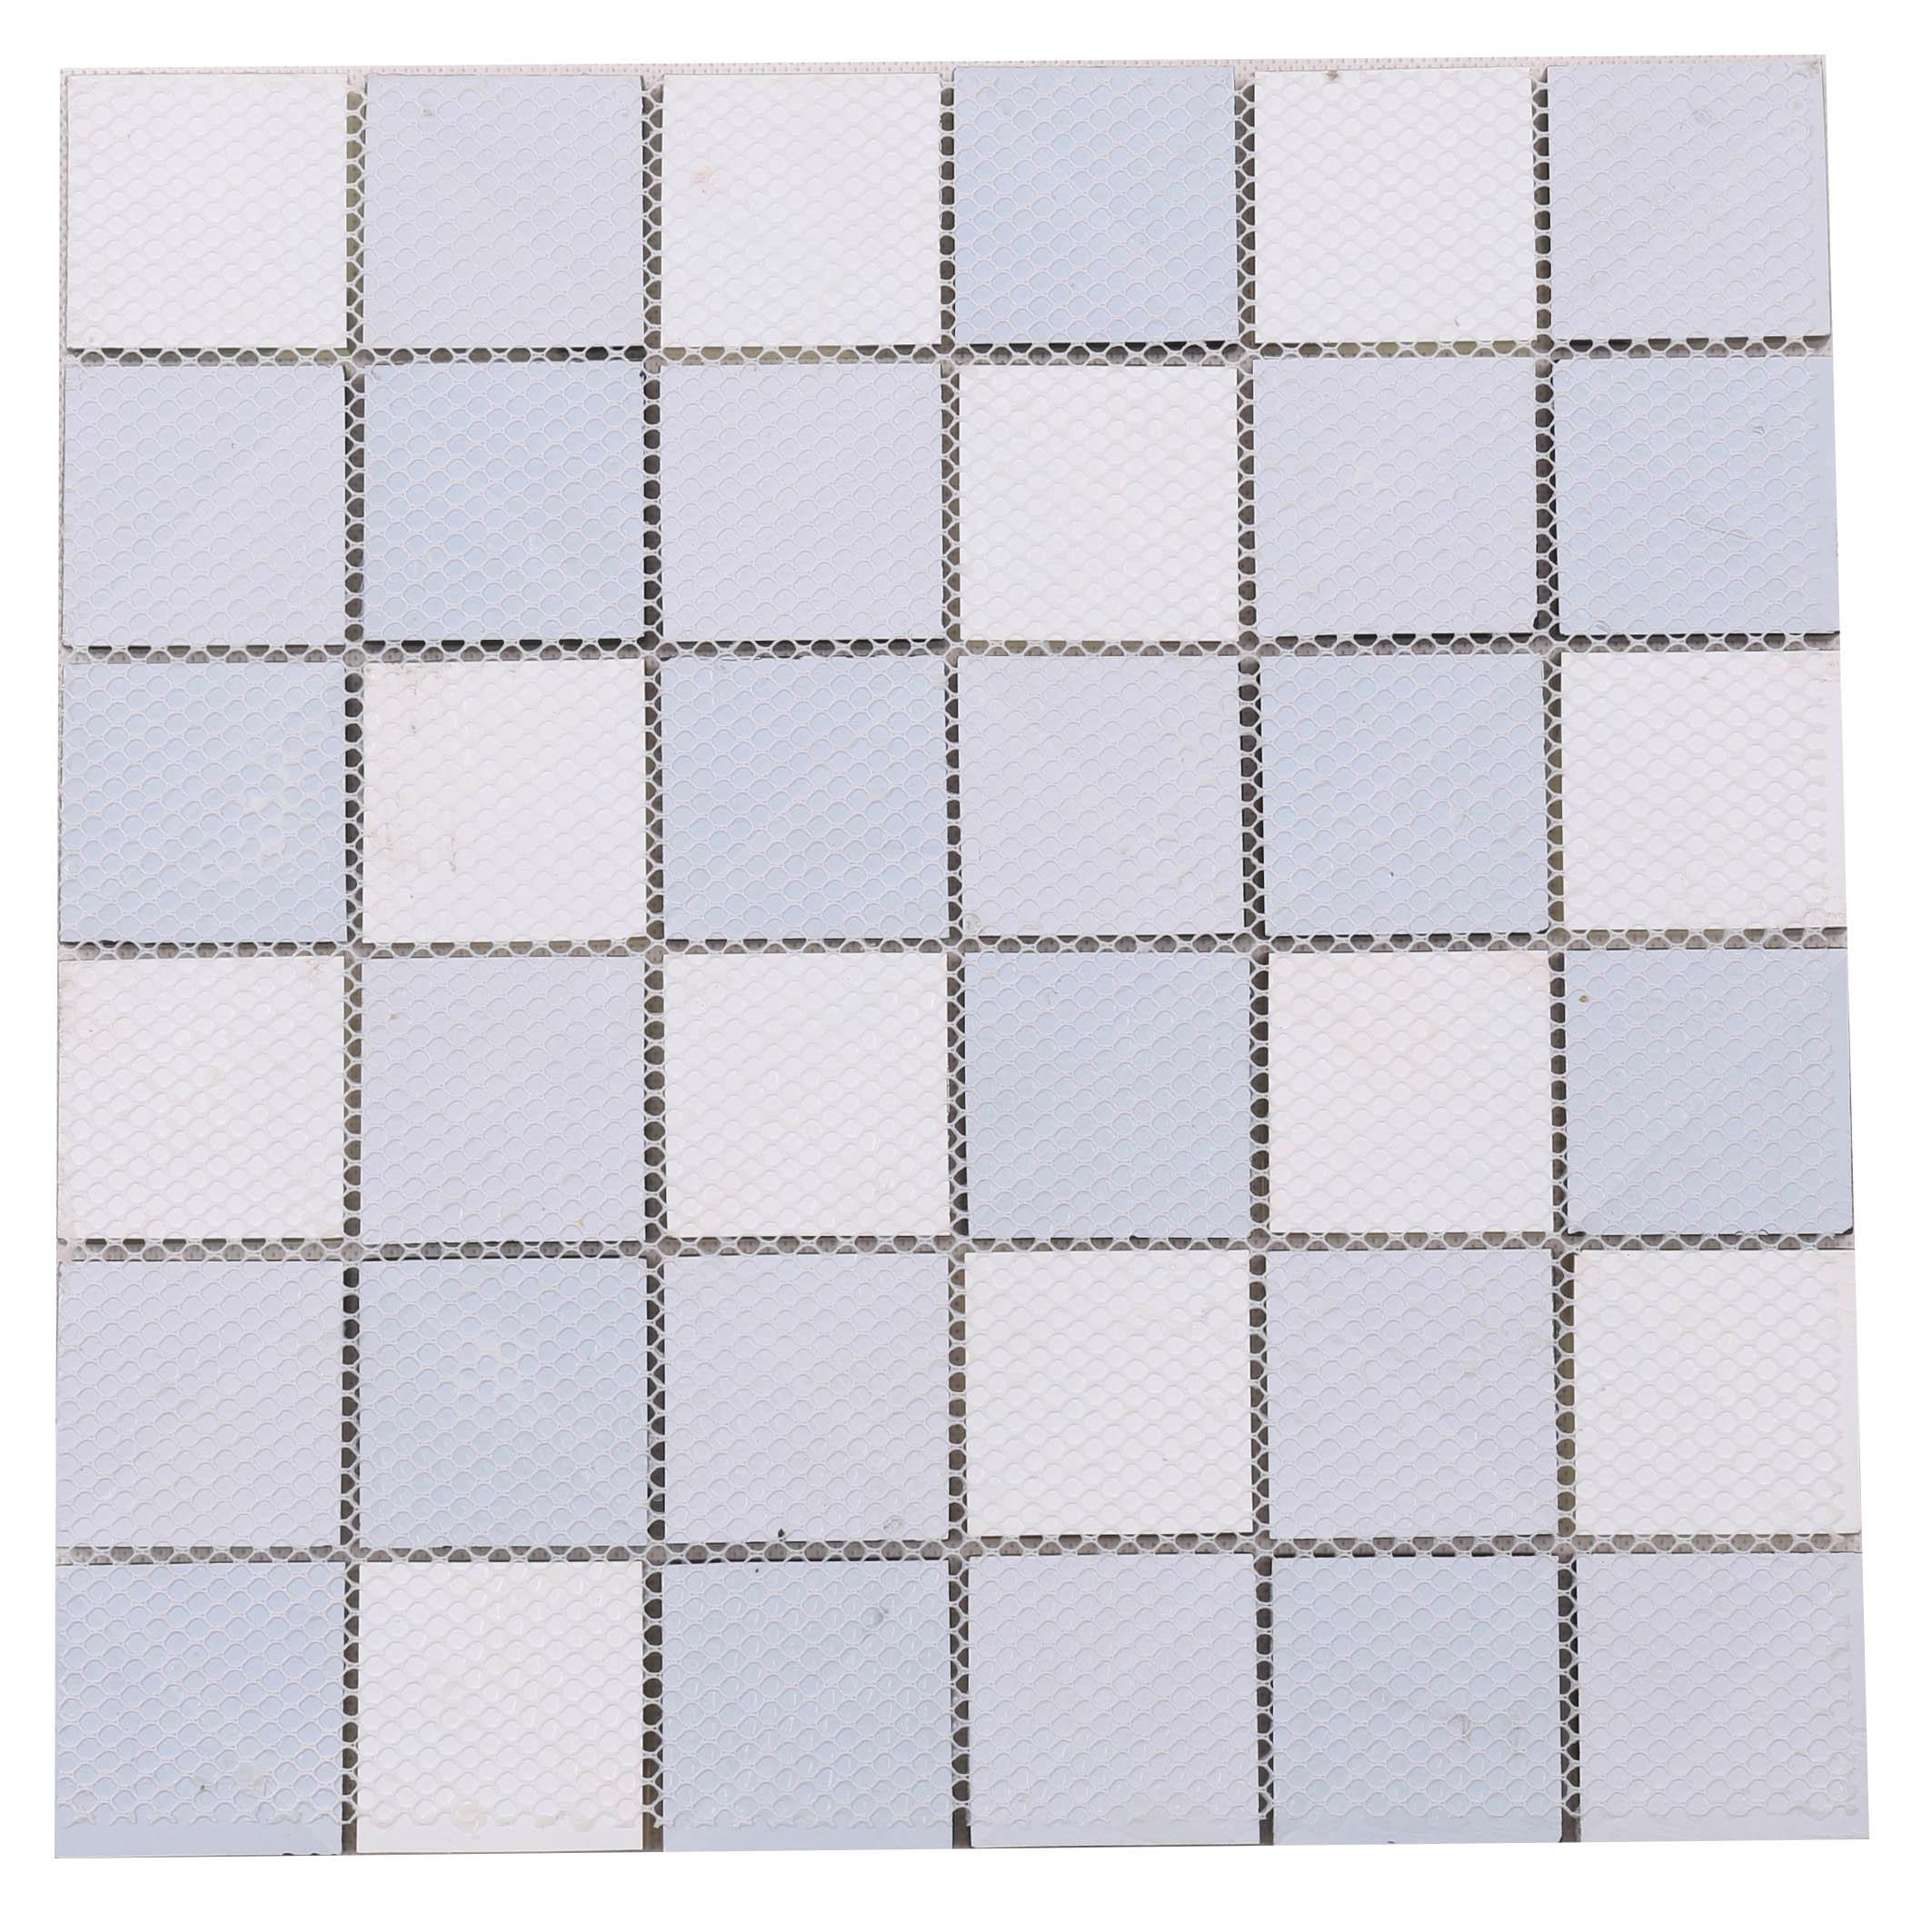 Heng Xing Best pool trim tiles for business for fountain-5